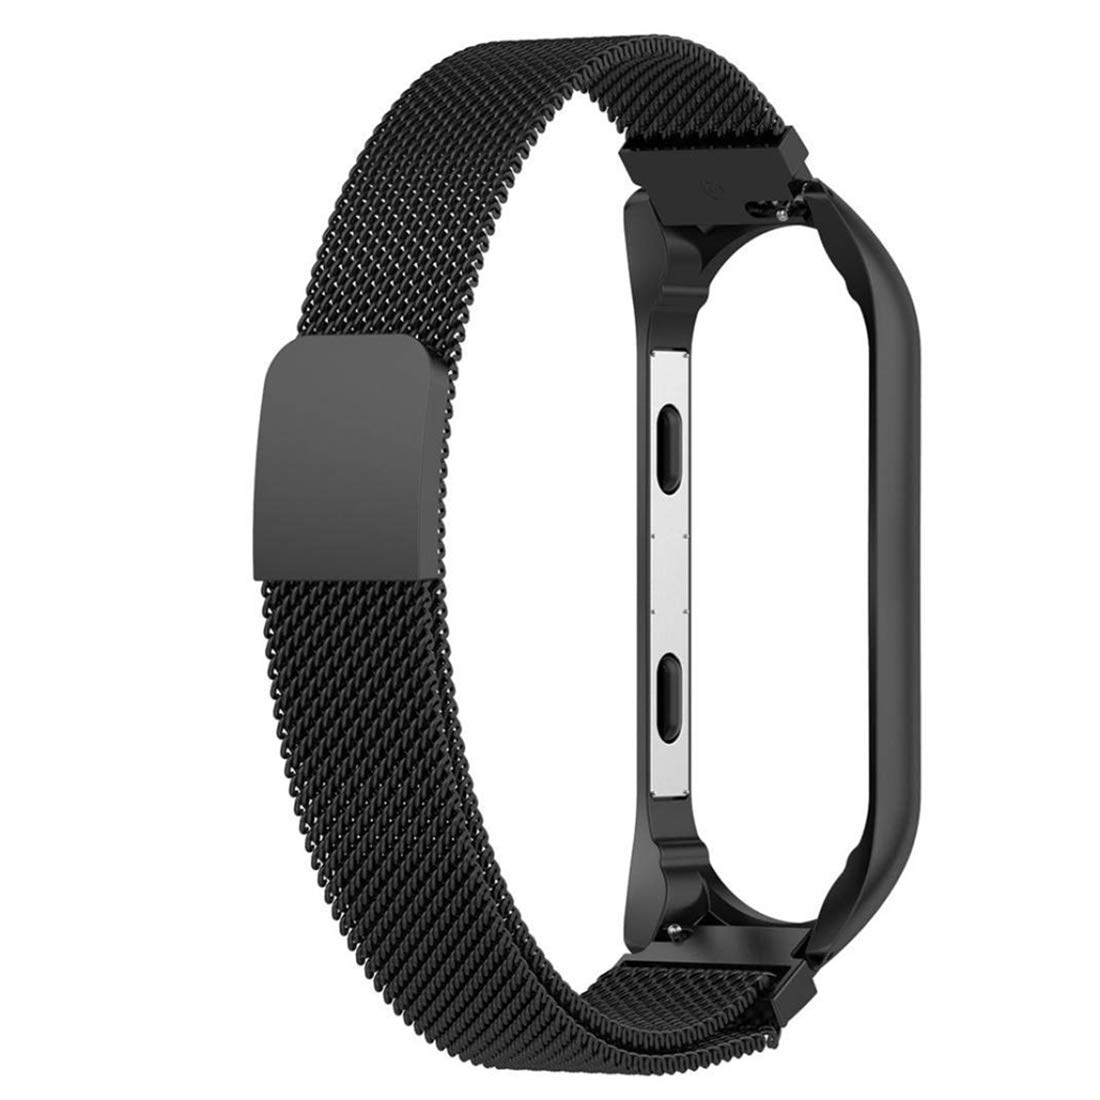 Rose gold Miband 3 Milanese Magnetic Loop Replacement Band Stainless Steel Bracelet Metal Sport Watchband Wristband for Xiao Mi Band 3 Onlyct Xiaomi Mi Band 3 Straps